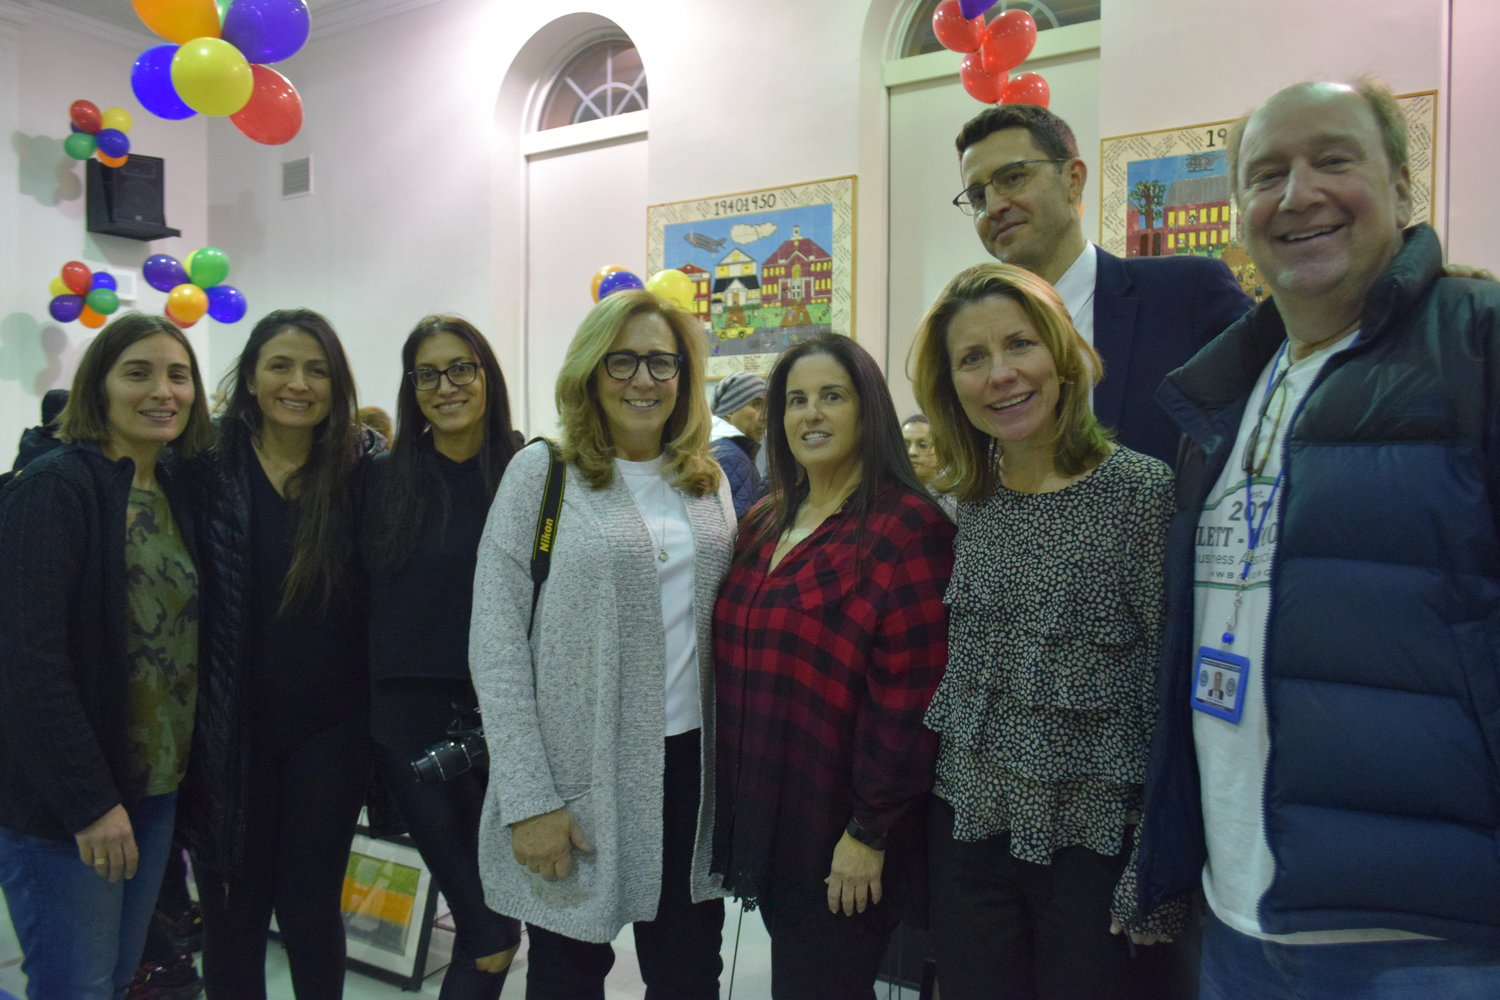 Art show organizers and supporters included from left, Adrienne Gupta, Cristina Marro, Suzanne Levy, Louise Edman, Elizabeth Tucker, Colleen O'Hara, Ross Cohen and David Friedman.